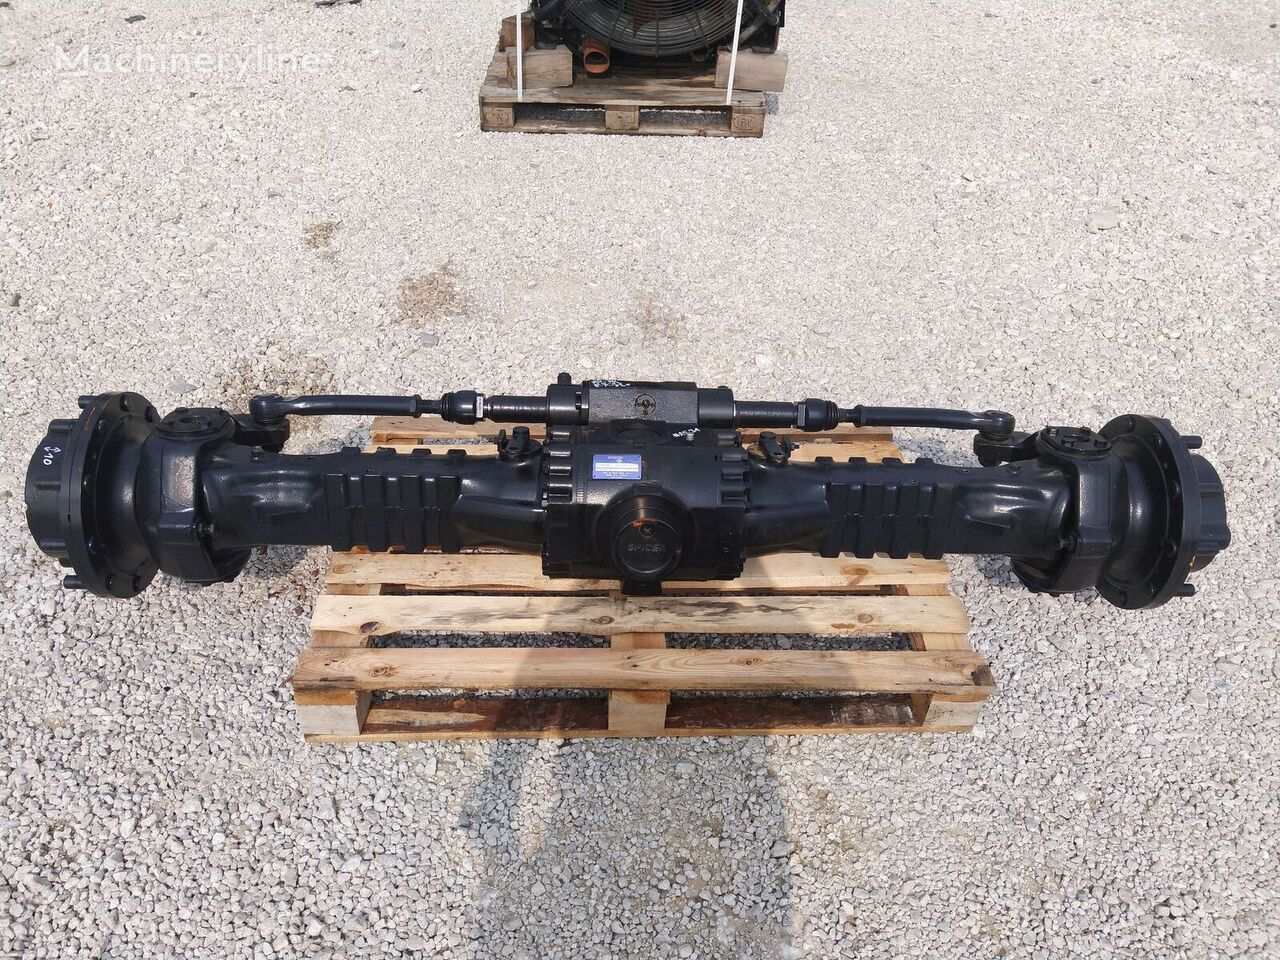 new Dana [P-14 S-4×27 W-71 SZ-10] Axle ach axle for MANITOU Spicer 212/304-004  wheel loader